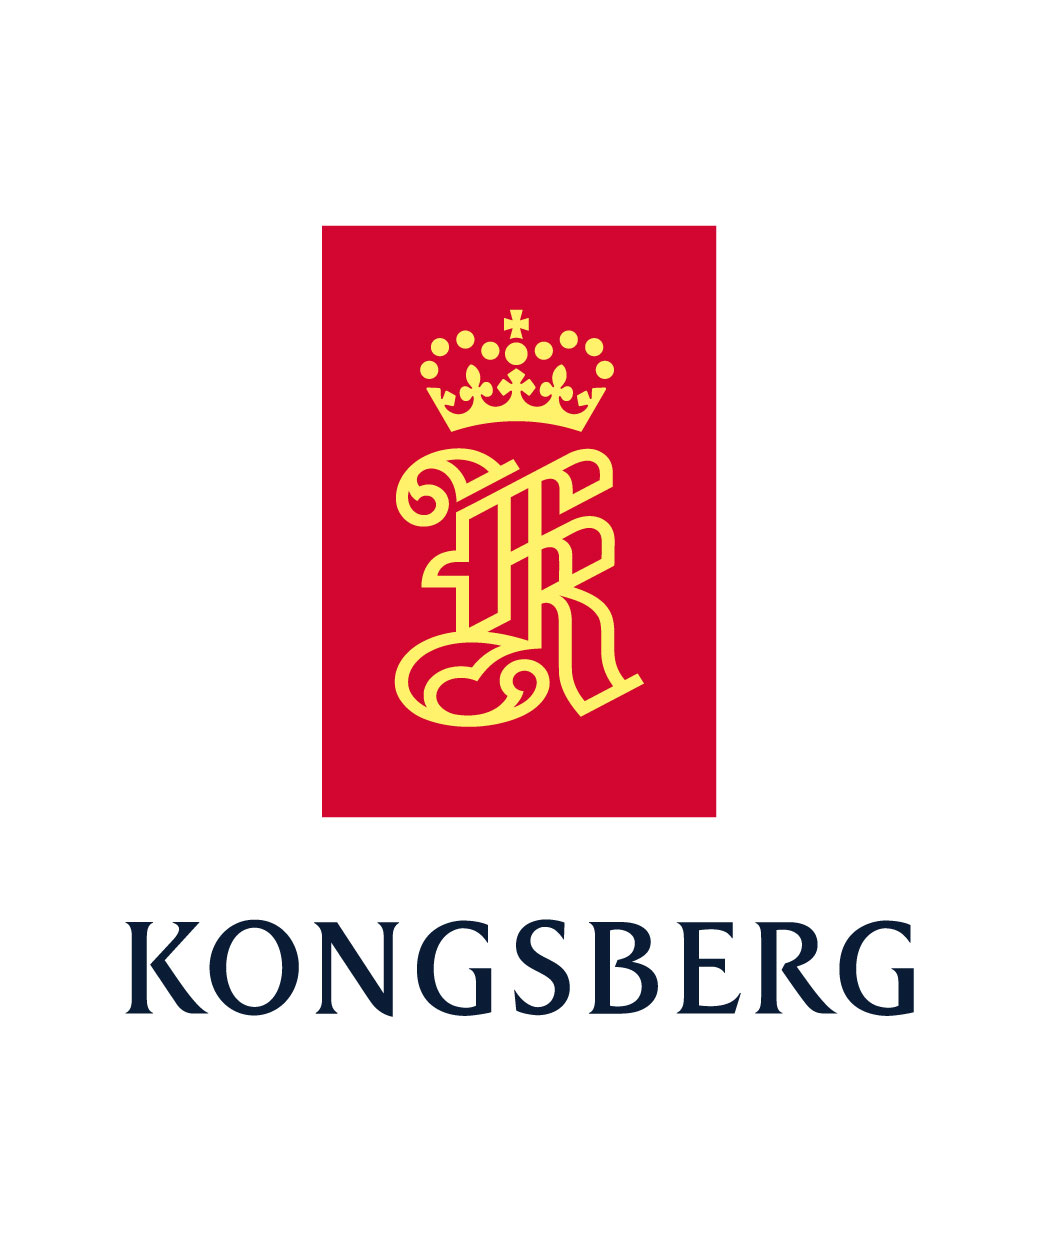 Kongsberg spacetec.no